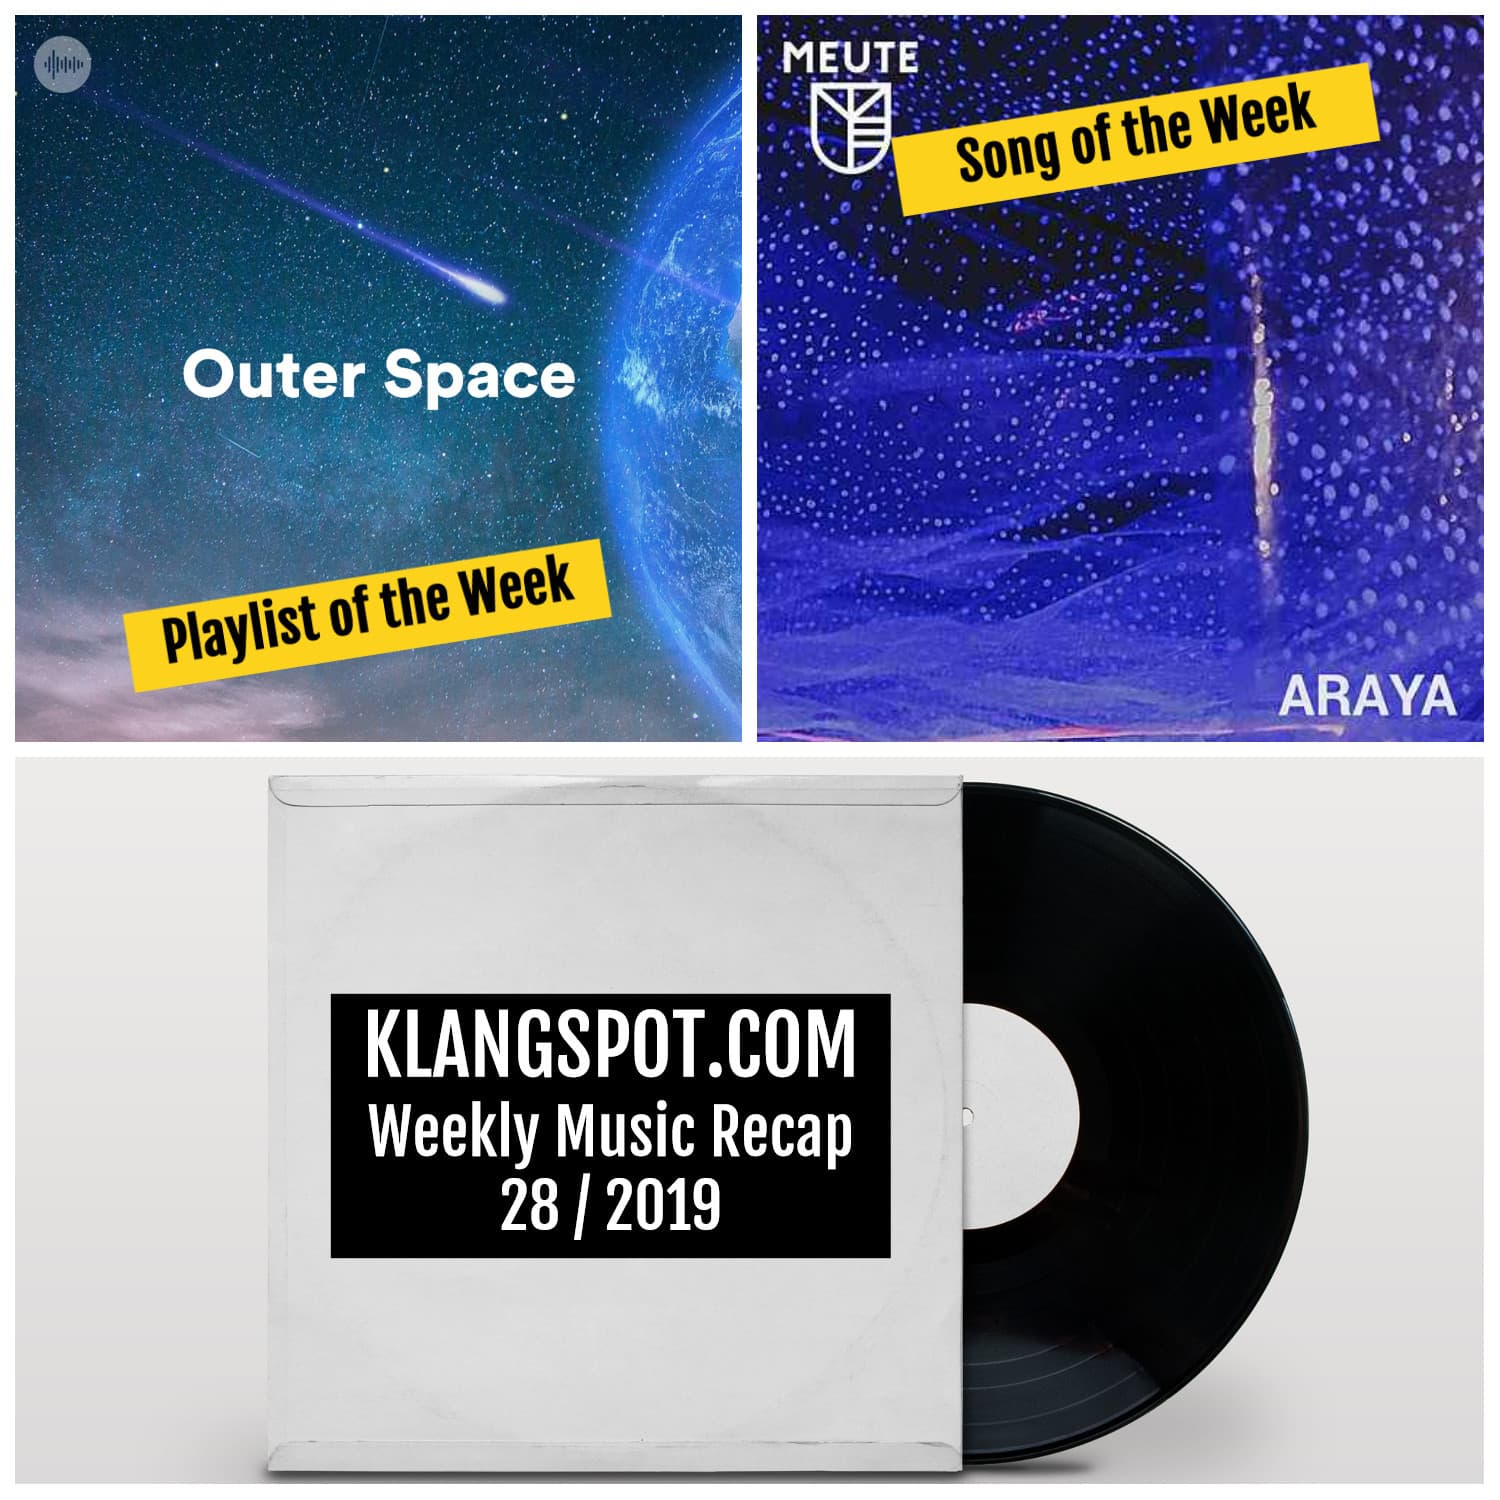 Weekly Music Recap 28/2019: Outer Space / MEUTE - 'Araya'